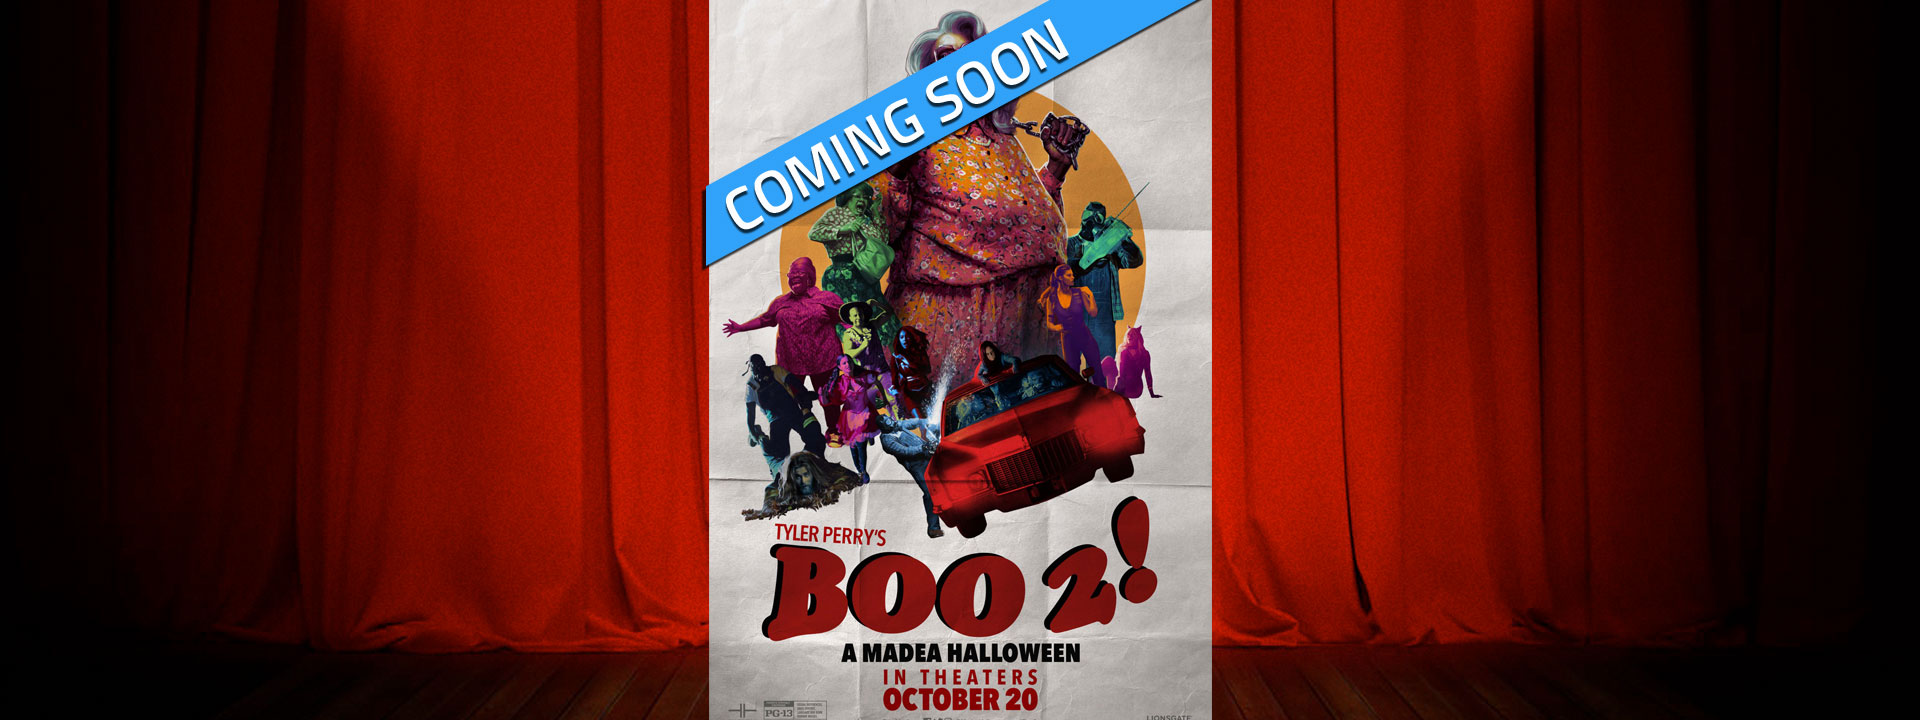 BOO 2! A Madea Halloween: Coming Soon